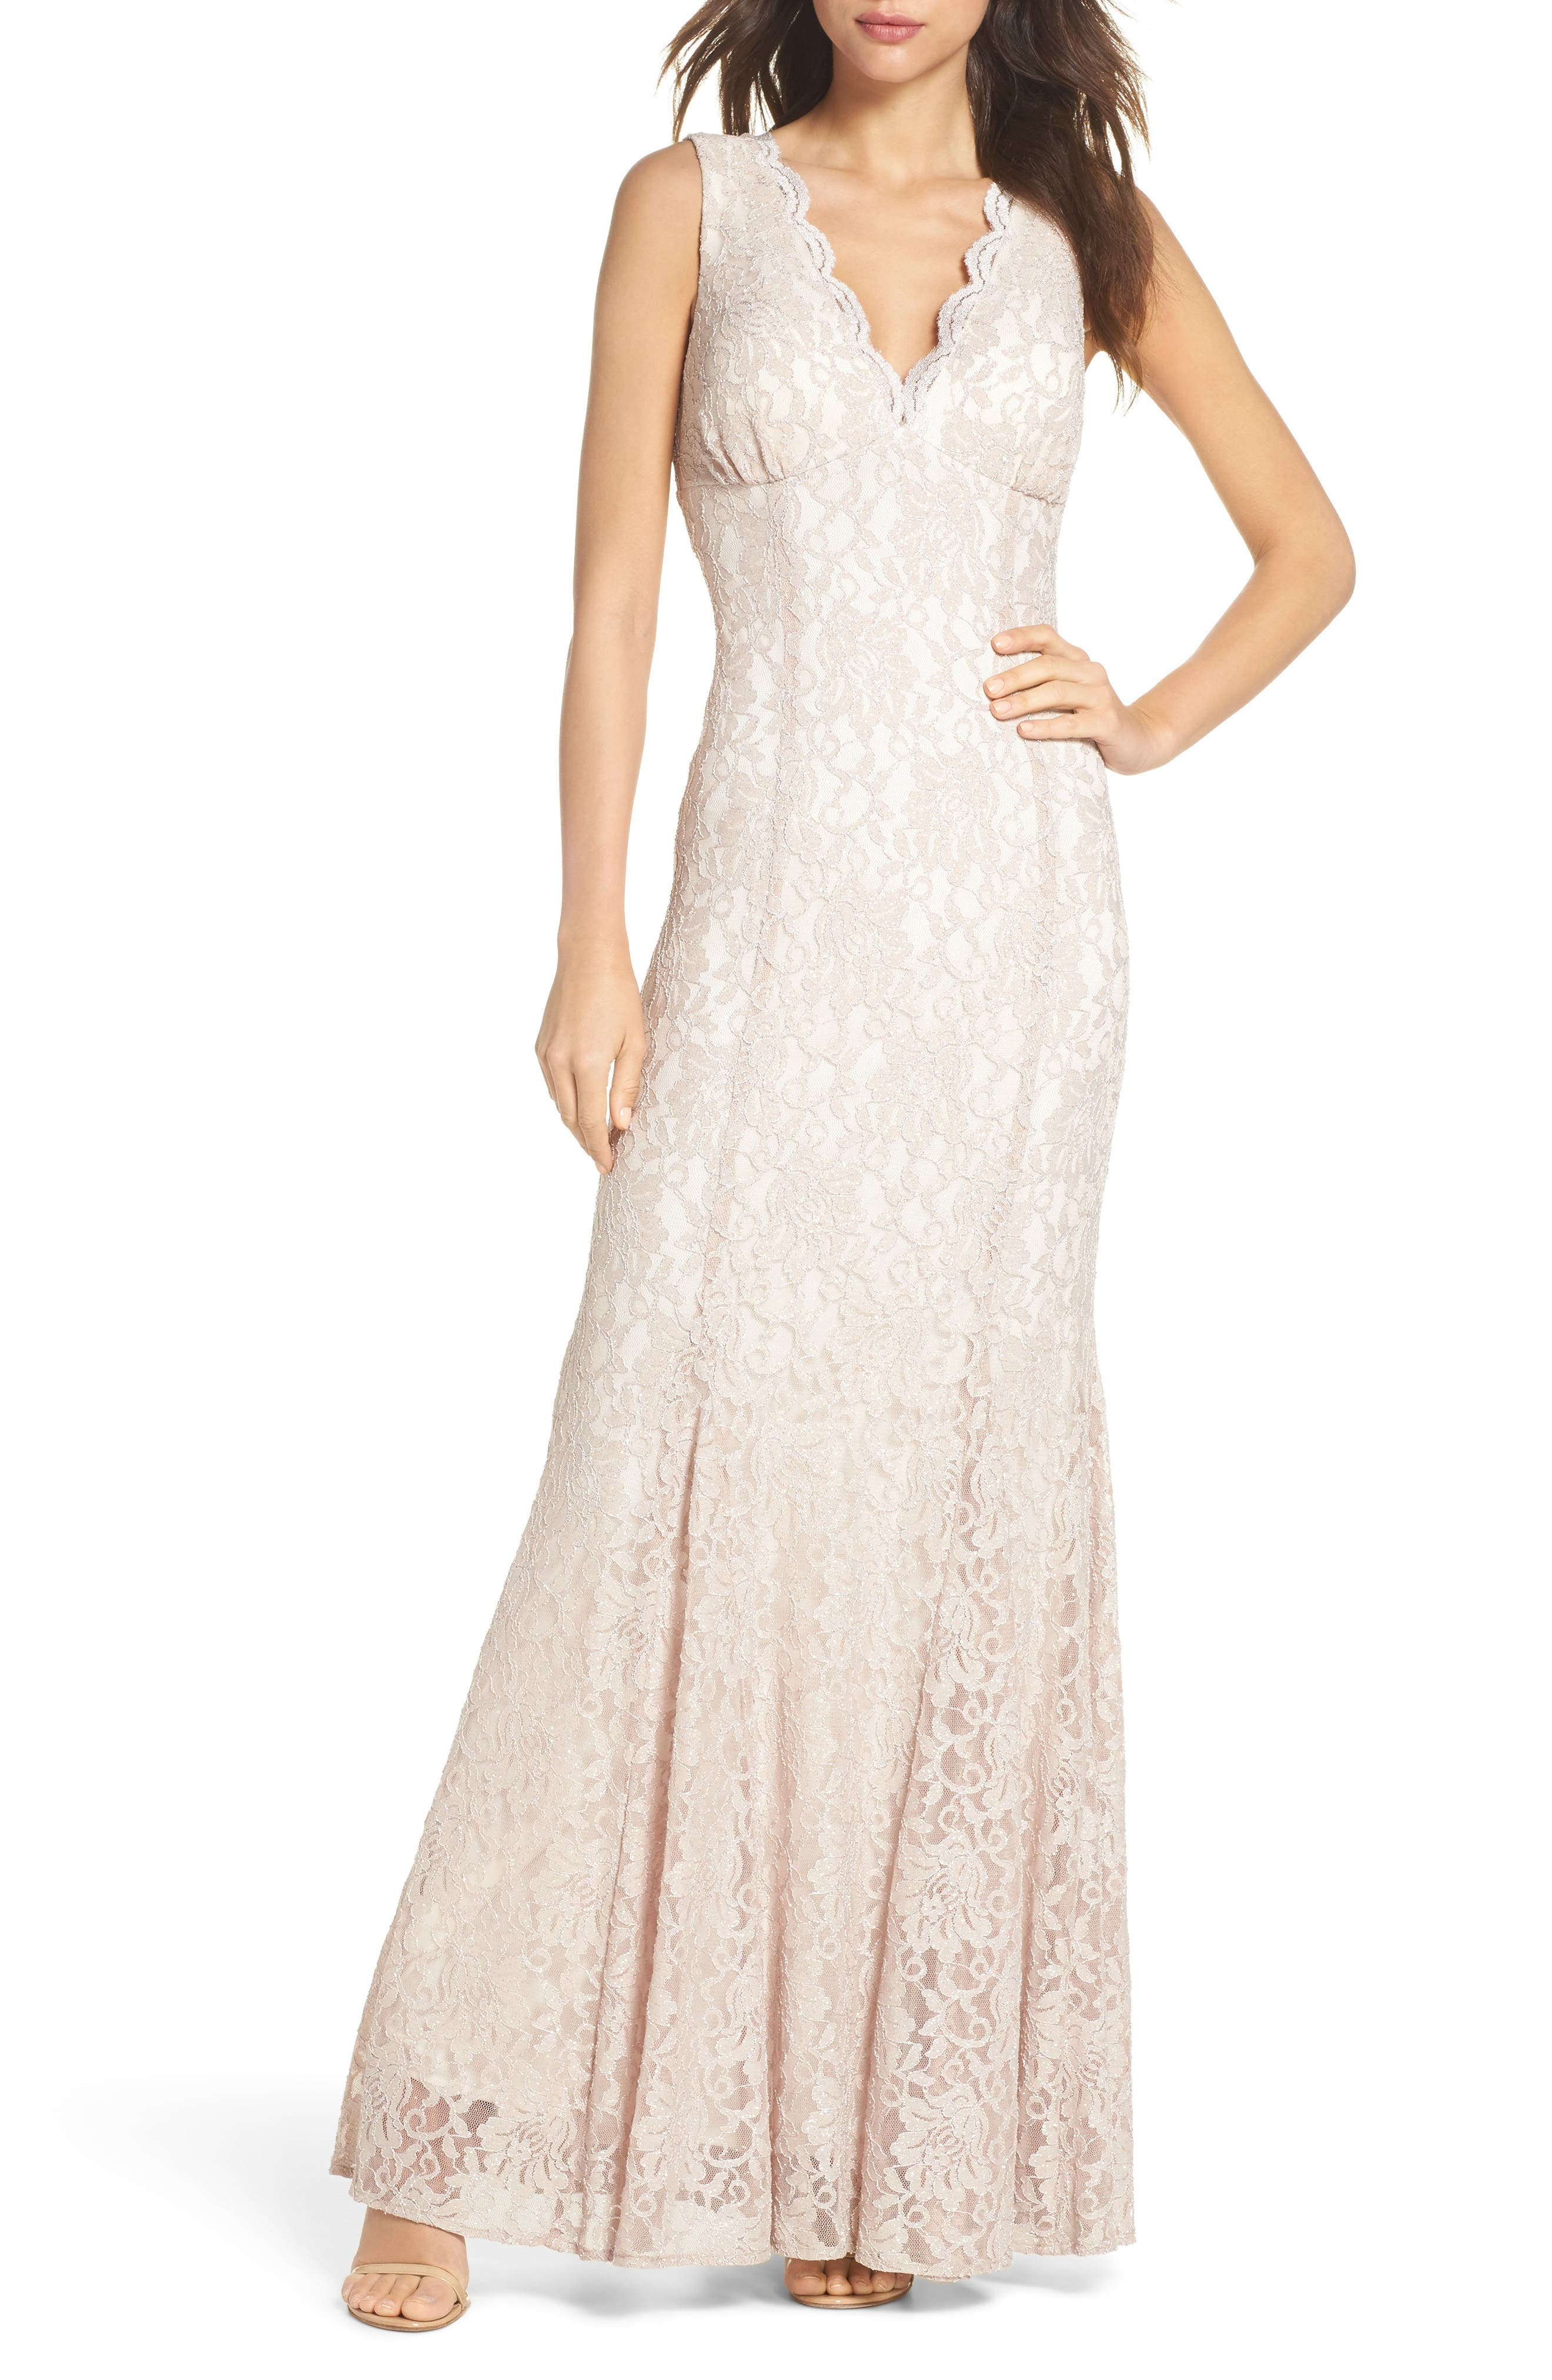 MORGAN & CO., Glitter Lace Trumpet Dress, Main thumbnail 1, color, CHAMPAGNE / IVORY